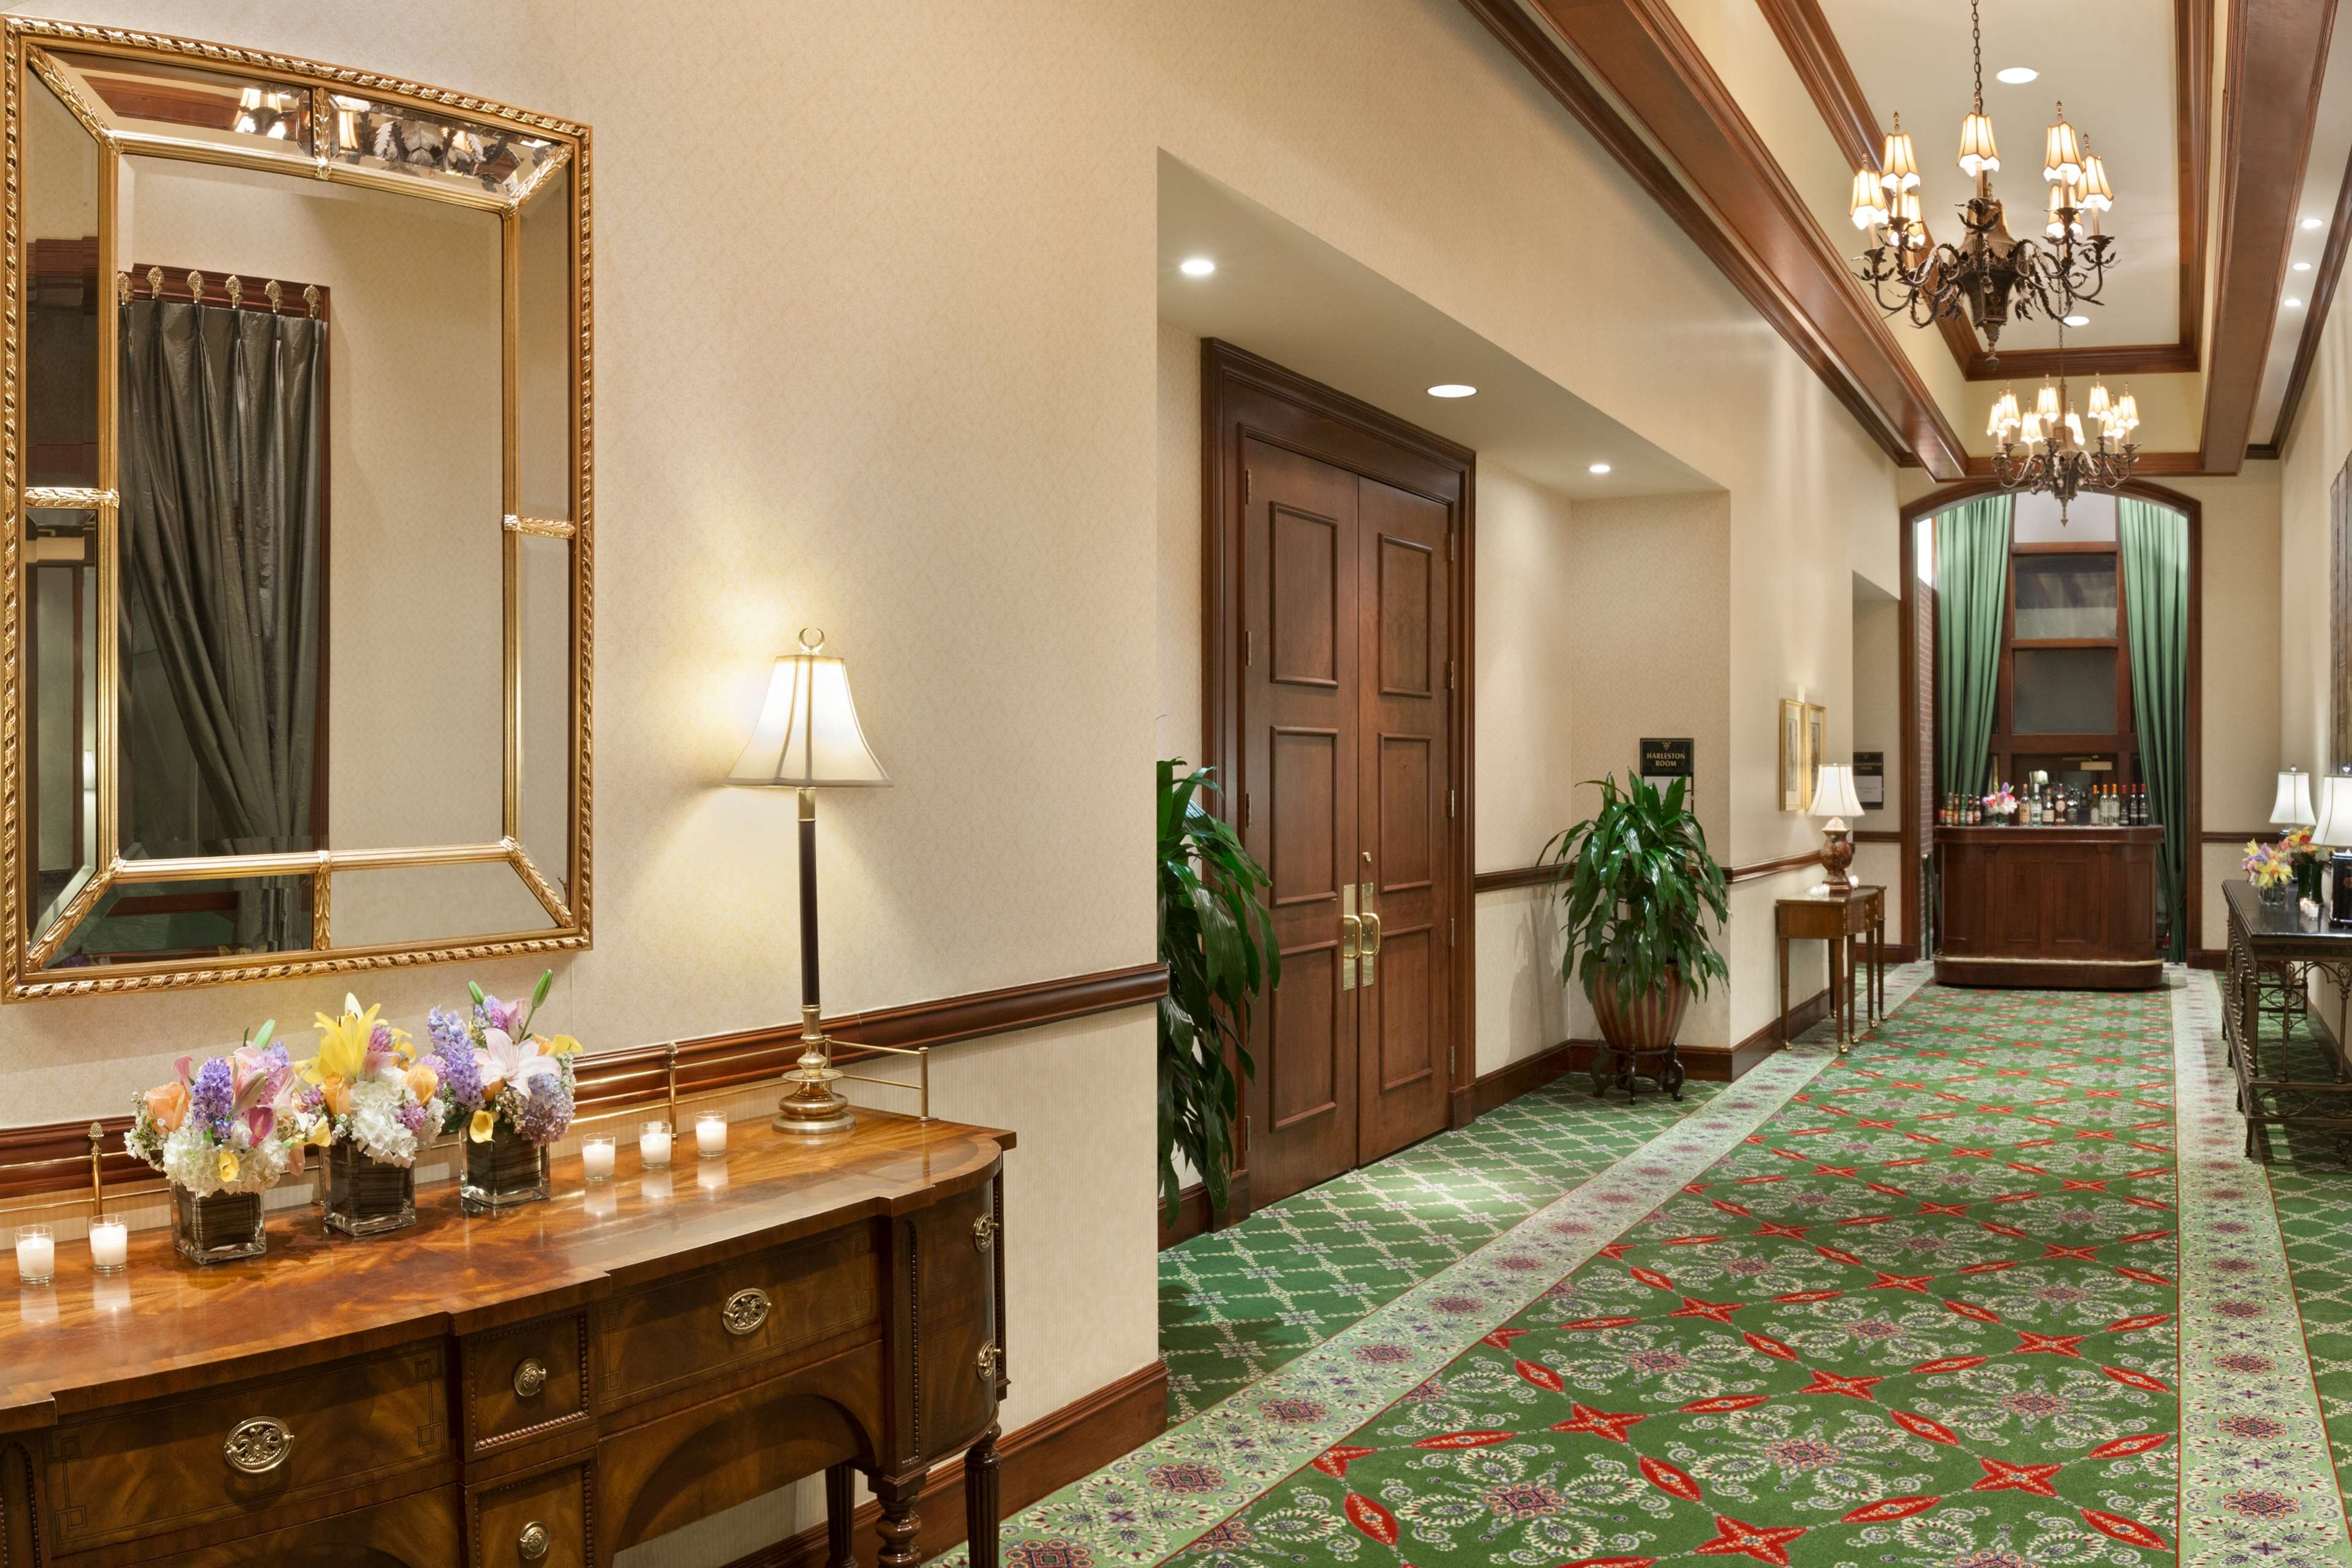 DoubleTree by Hilton Hotel & Suites Charleston - Historic District image 22